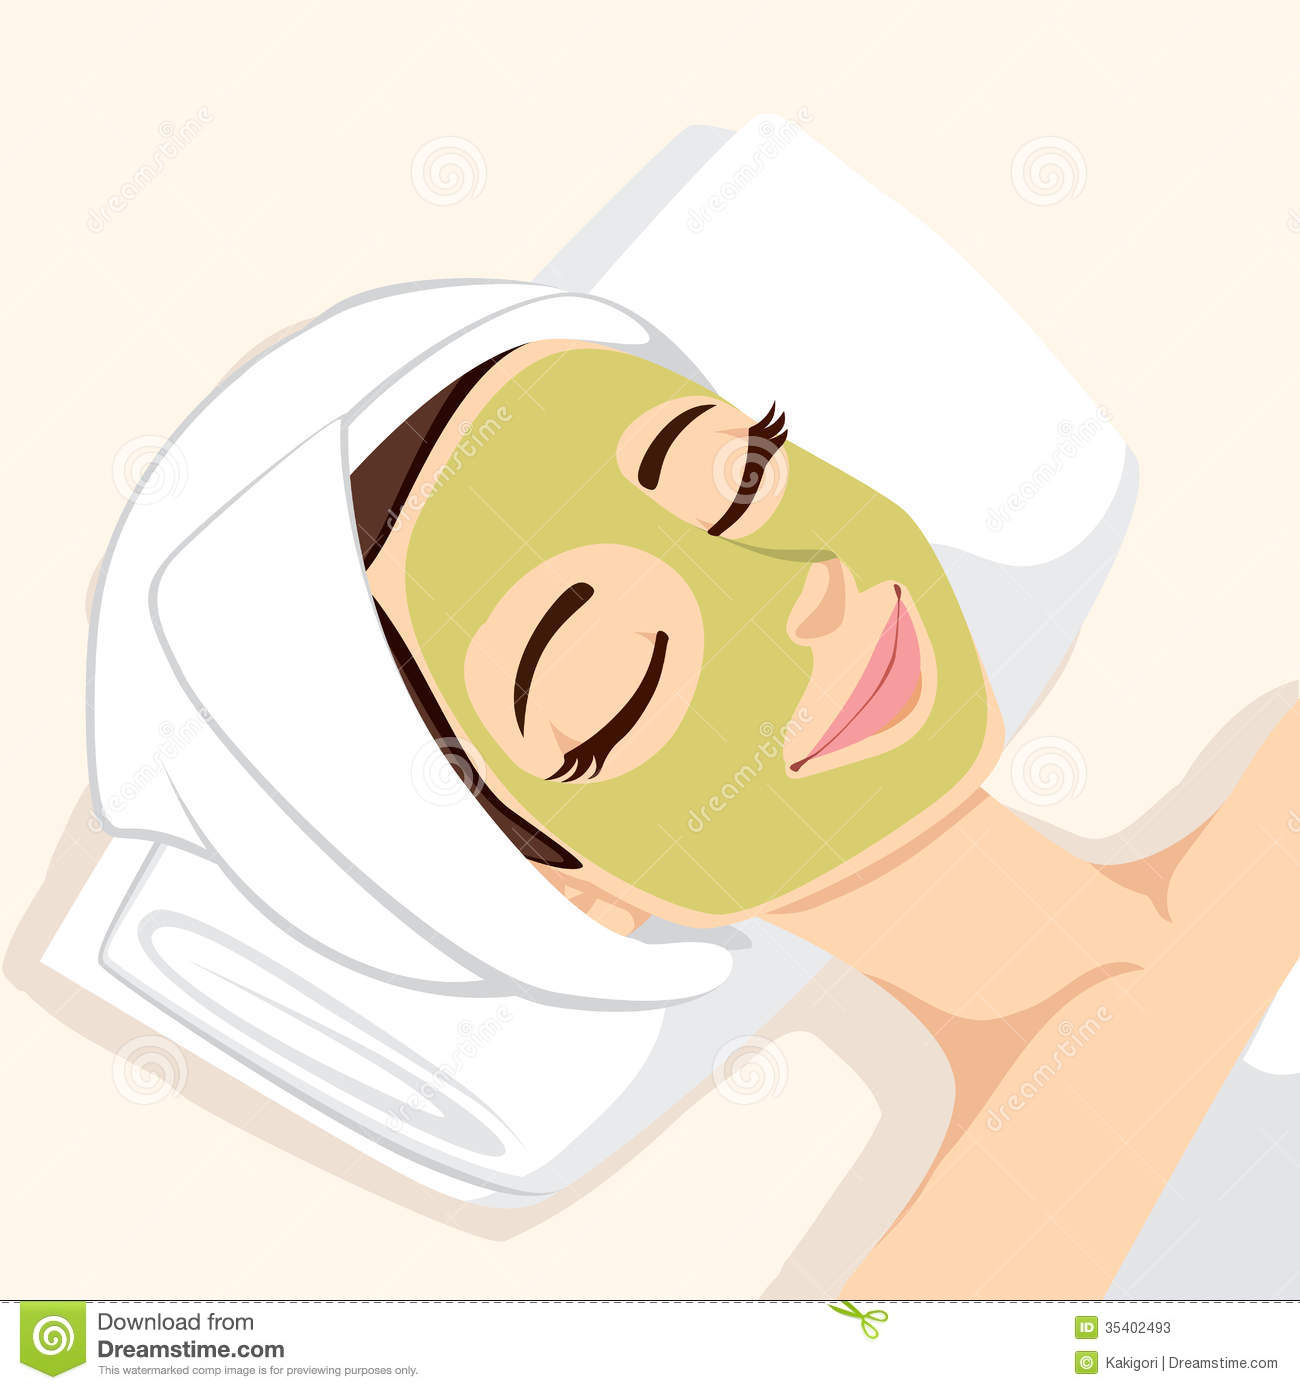 Facial Mask Stock Illustrations 17 953 Facial Mask Stock Illustrations Vectors Clipart Dreamstime